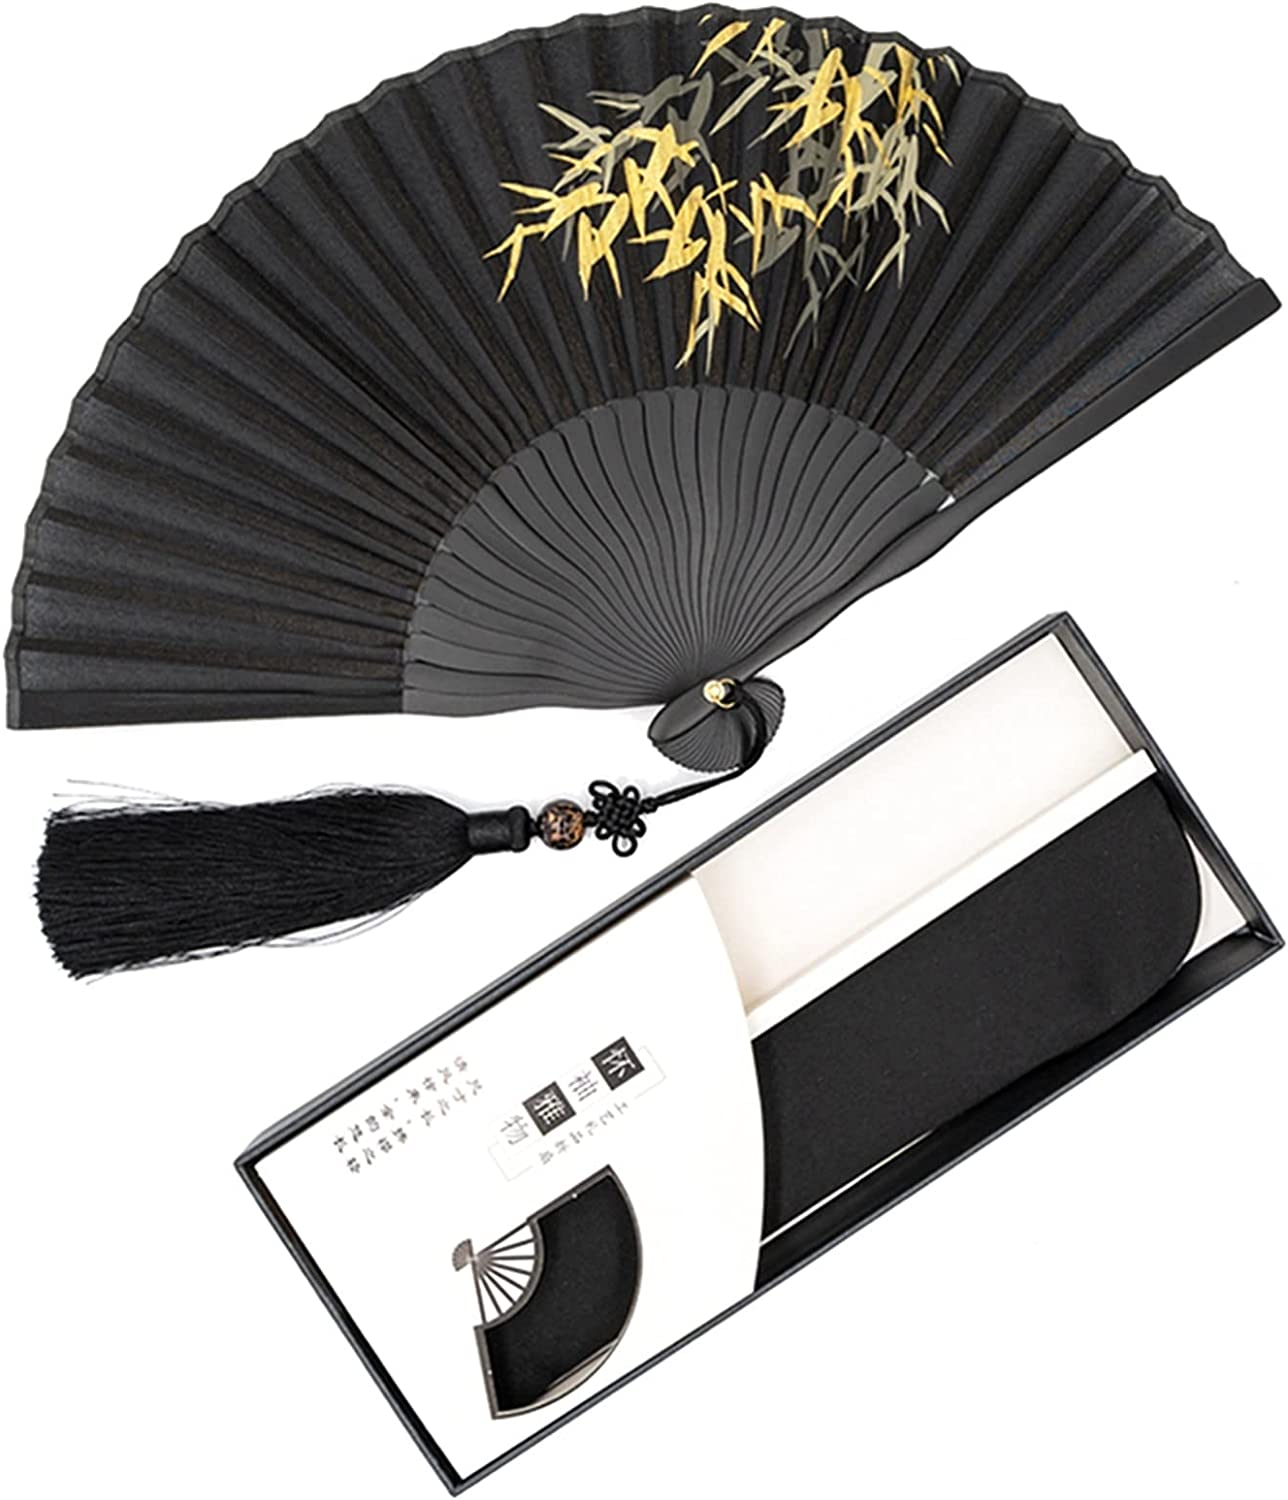 RAN Small Black Folding Fans, Chinese Bamboo Leaf Pattern Hand F